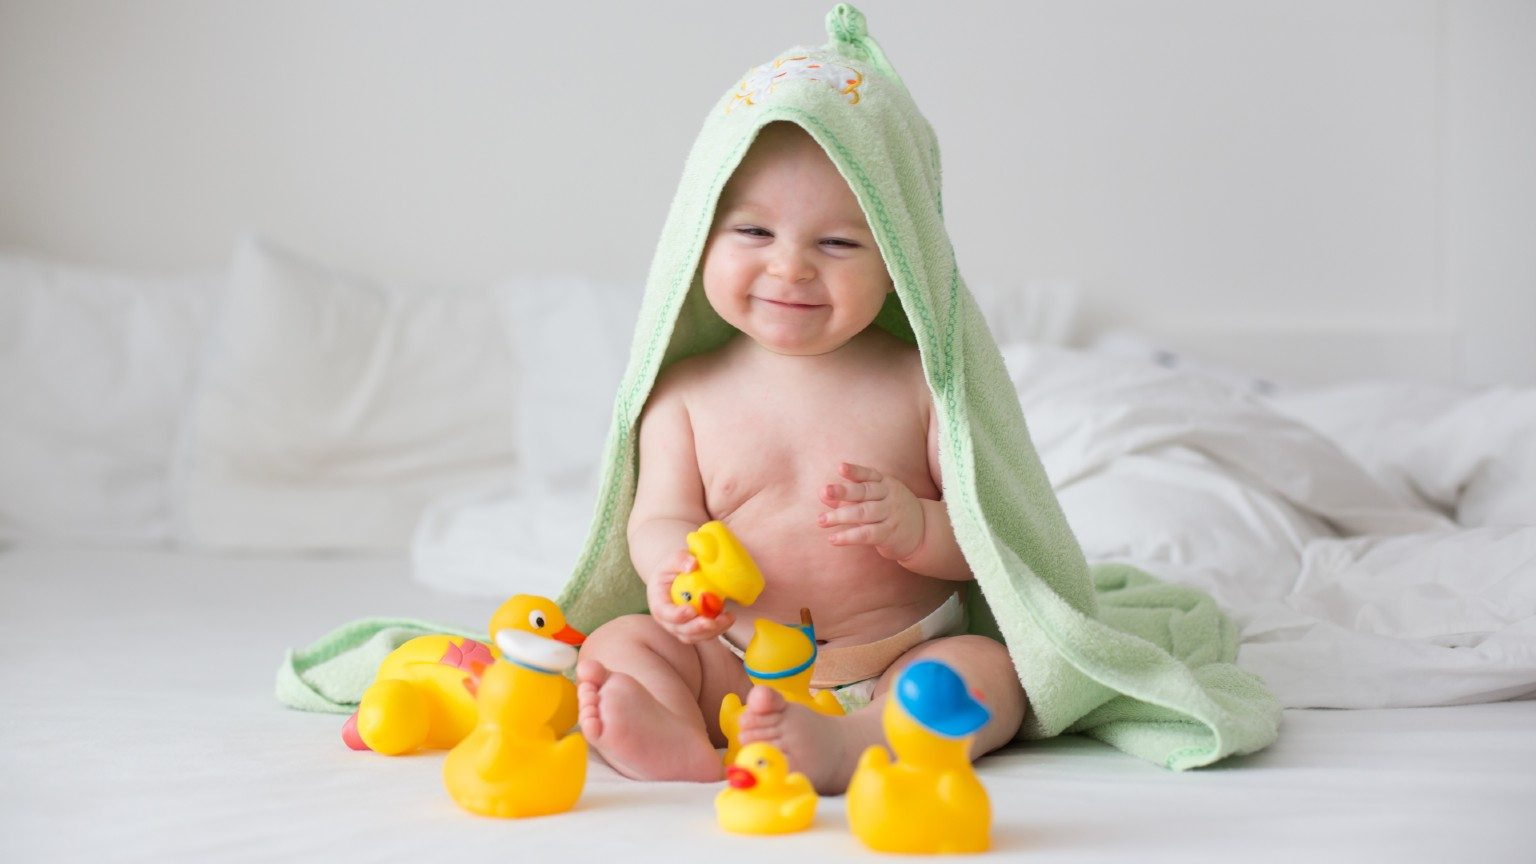 Baby playing with toy ducks